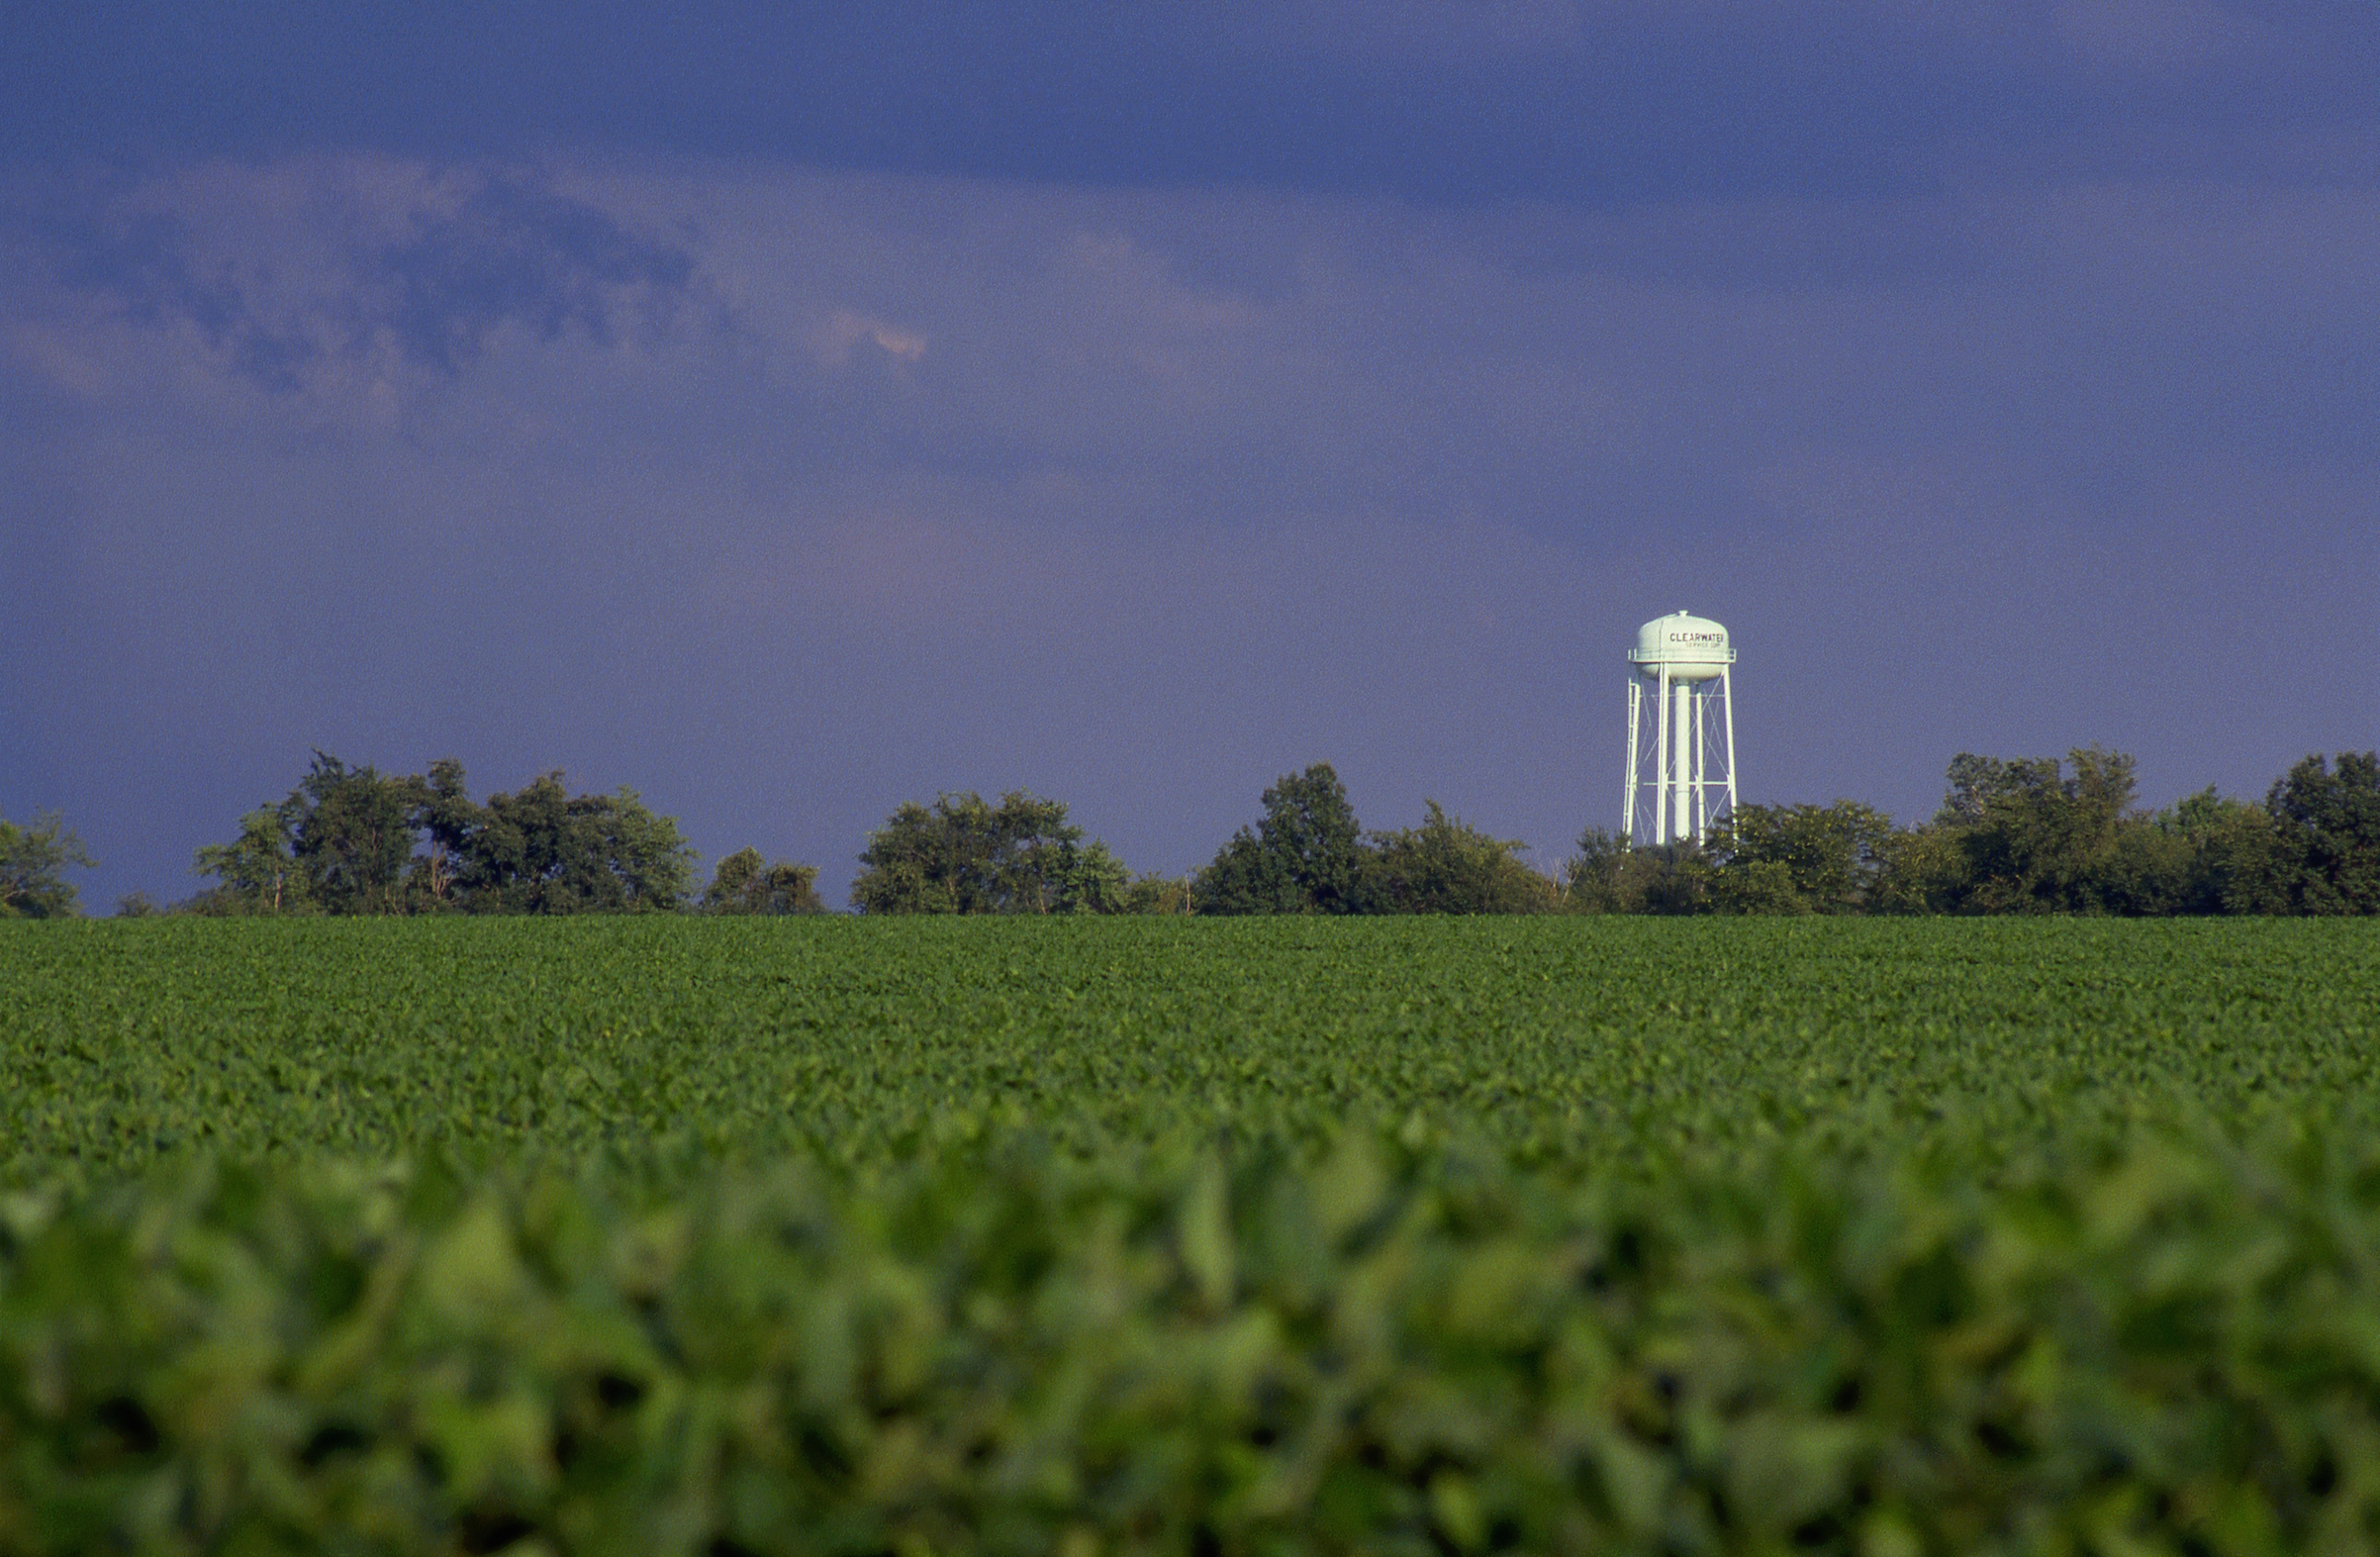 Soybean field and Water tower, Illinois.